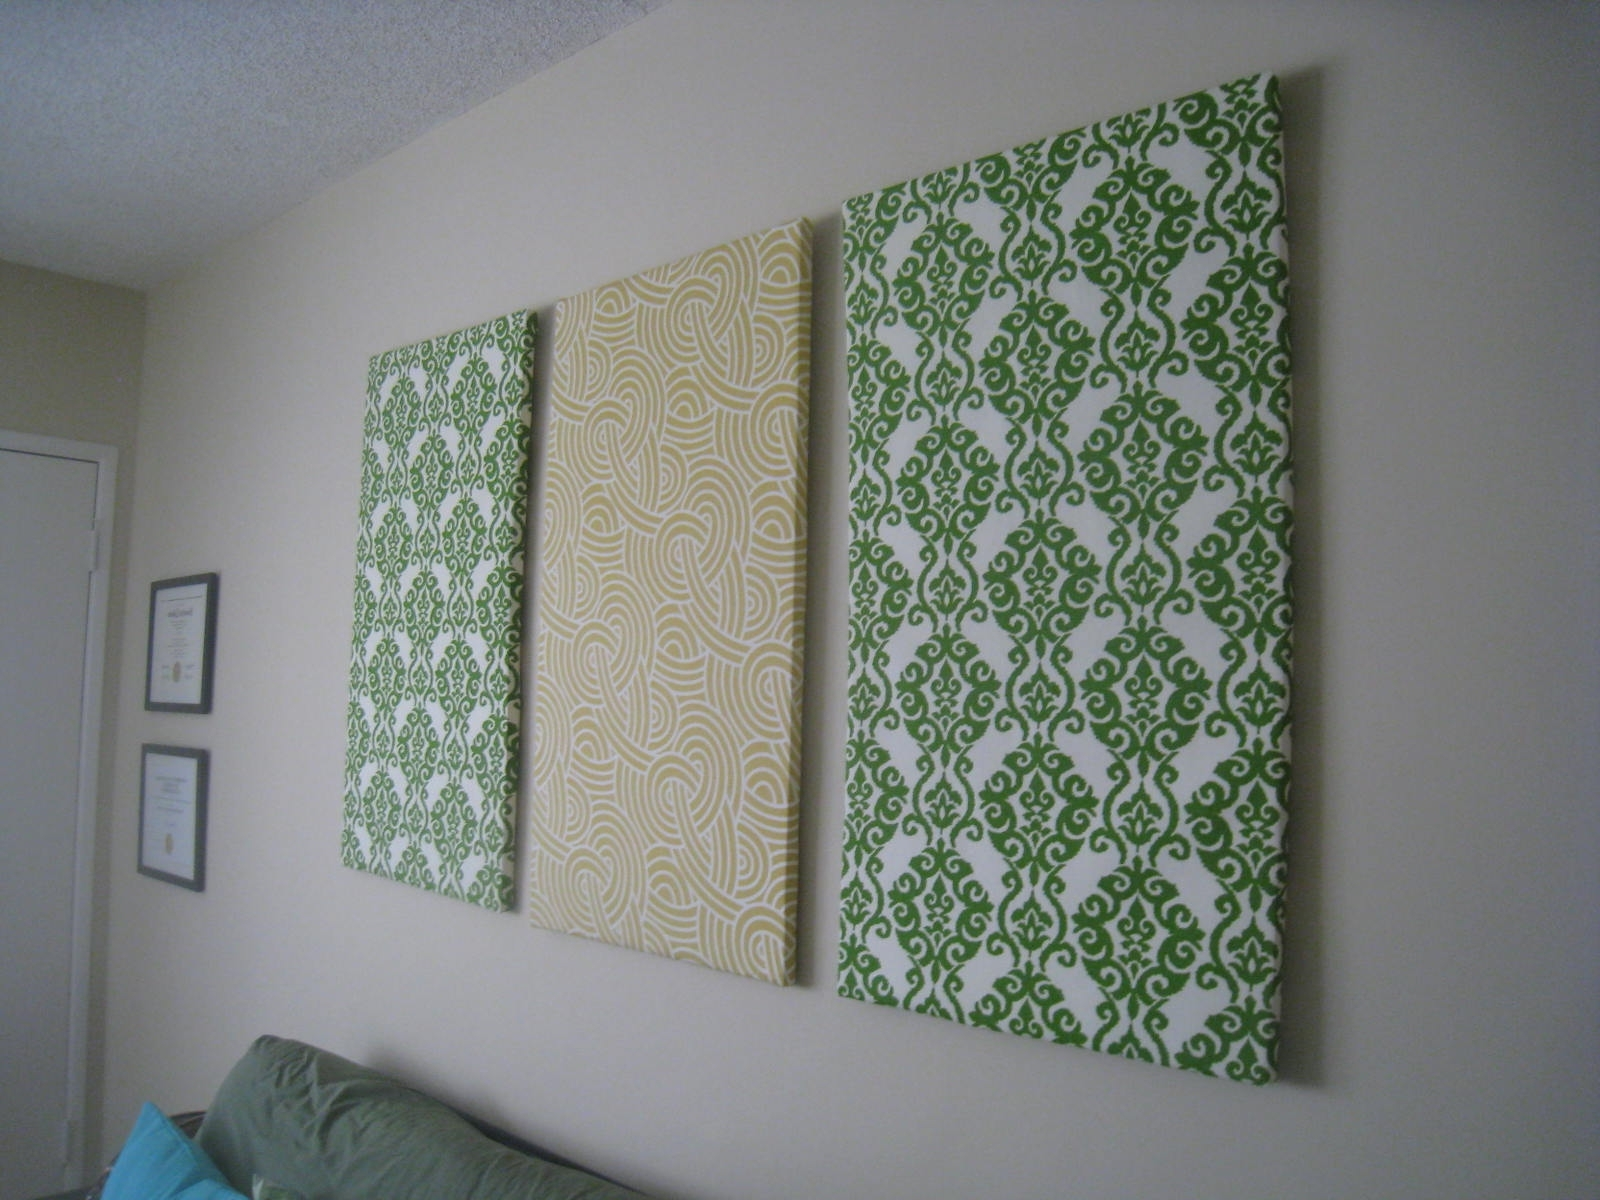 Art: Diy Fabric Wall Art Within Trendy Diy Fabric Wall Art Panels (View 2 of 15)